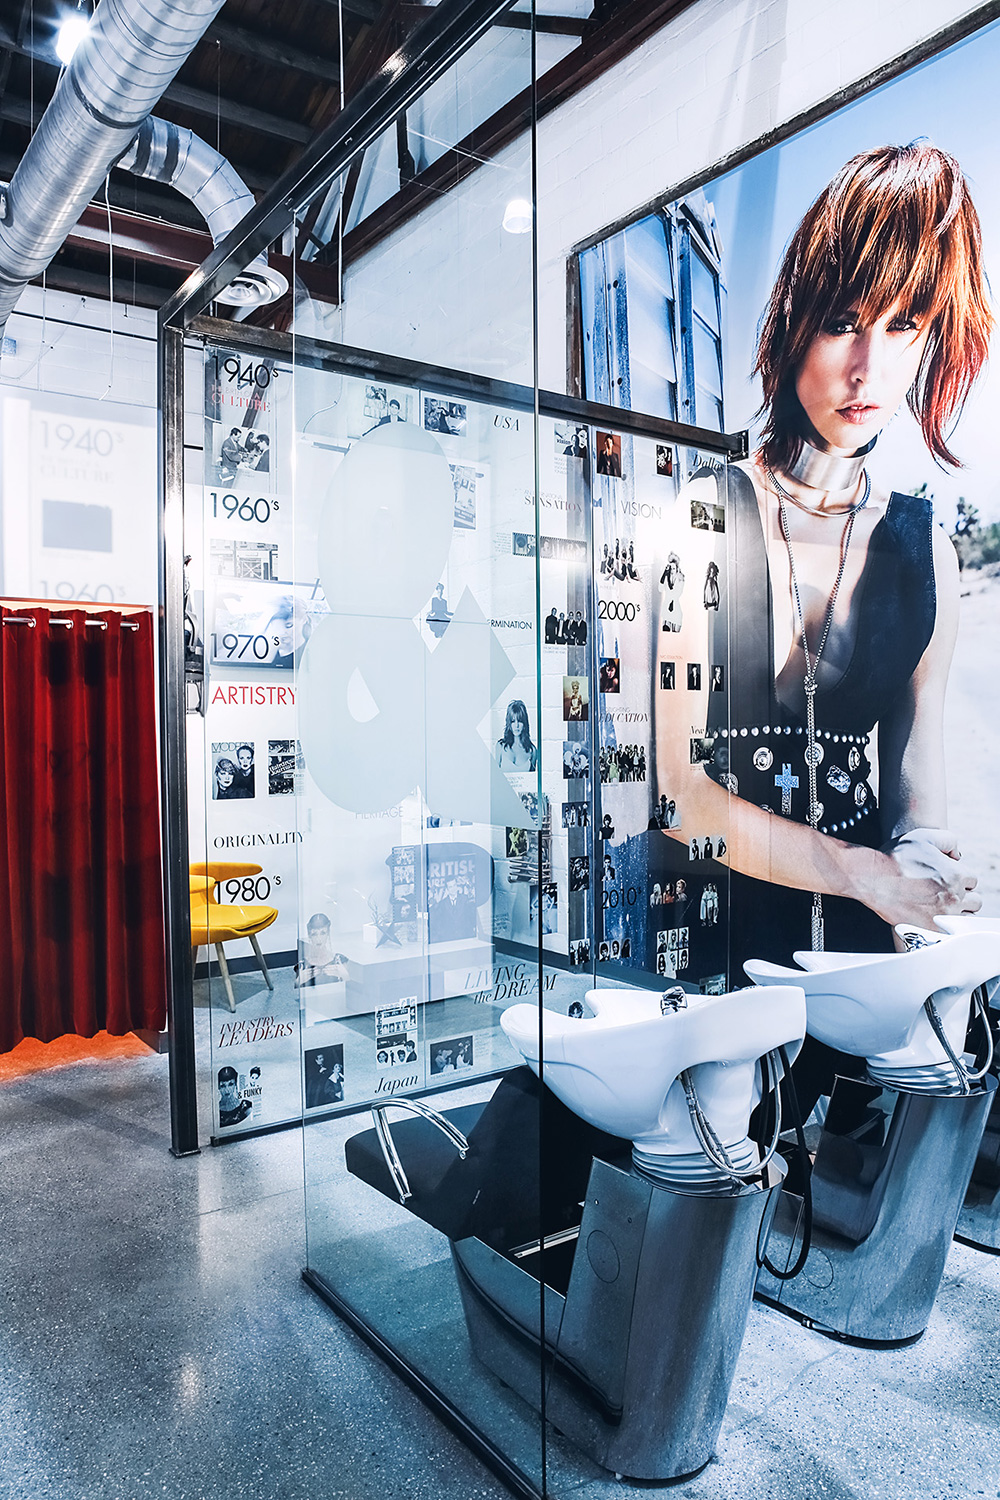 2016 NAHA FINALISTS: Salon/School Design